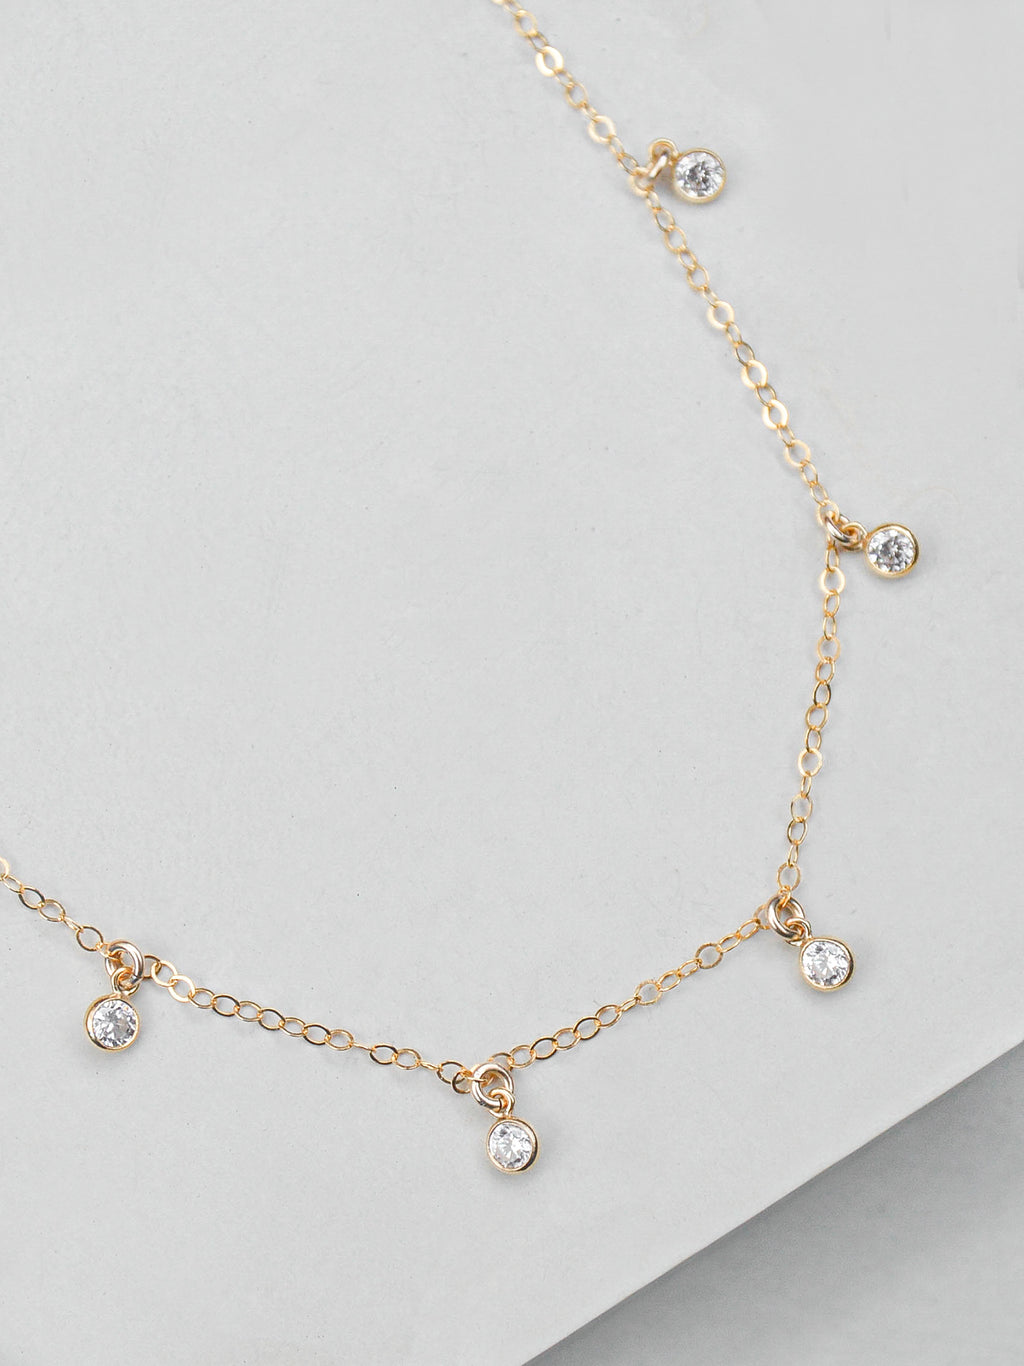 Dainty Gold Filled Charm Necklace by The Faint Hearted Jewelry